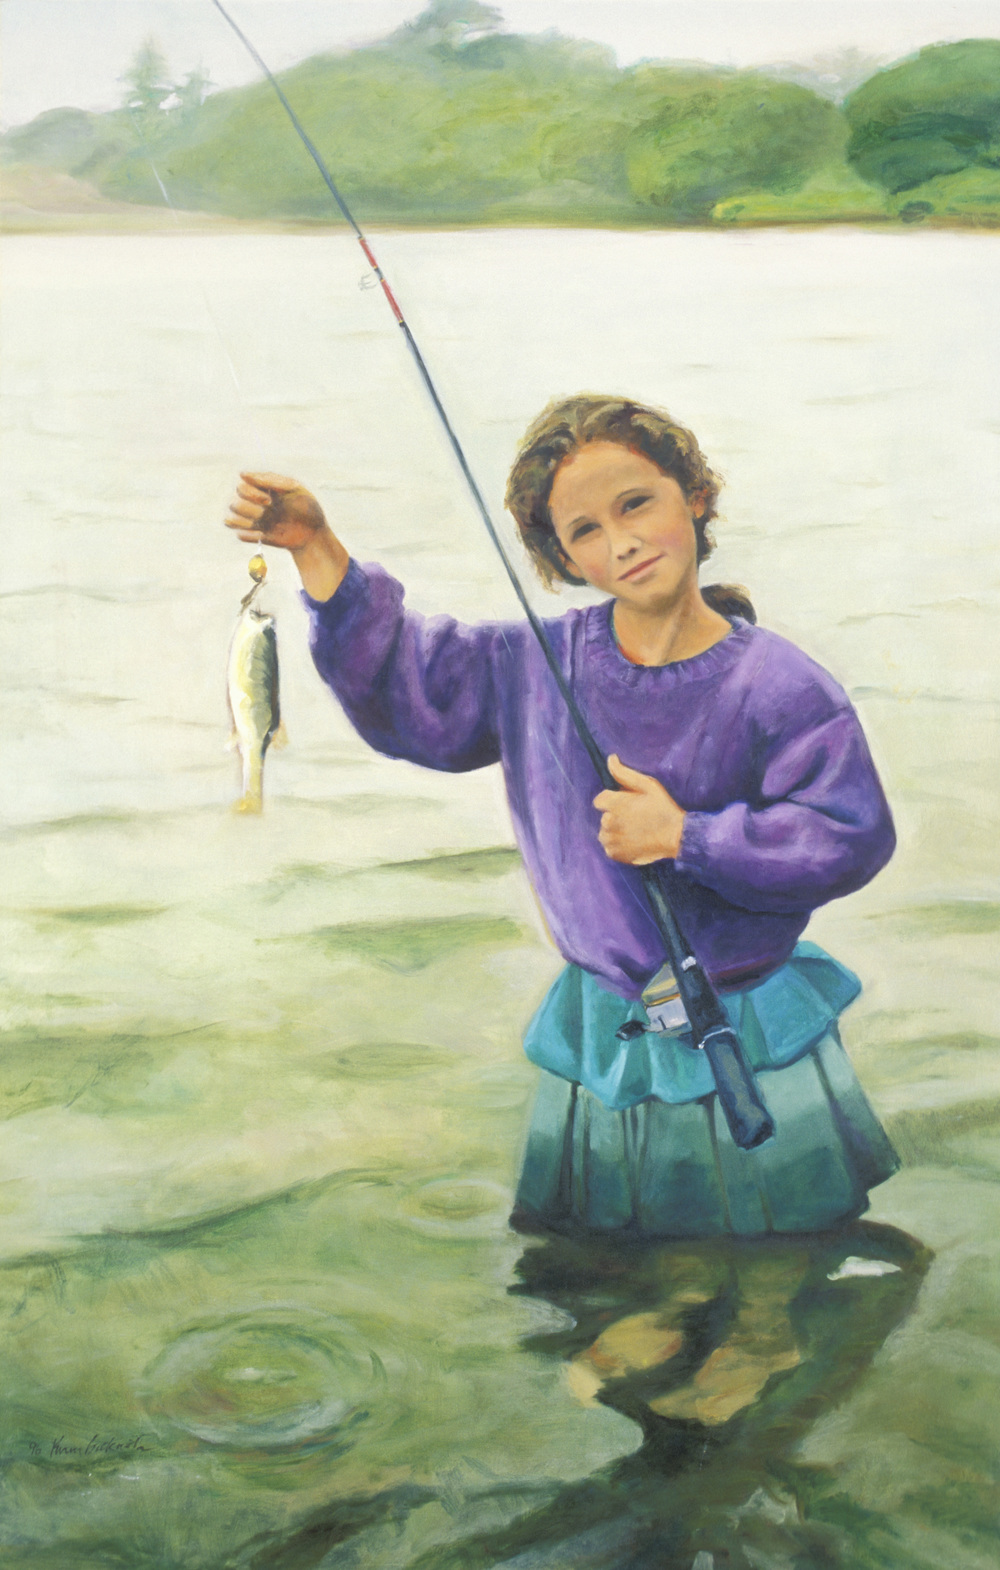 06_pond_fishing.jpg